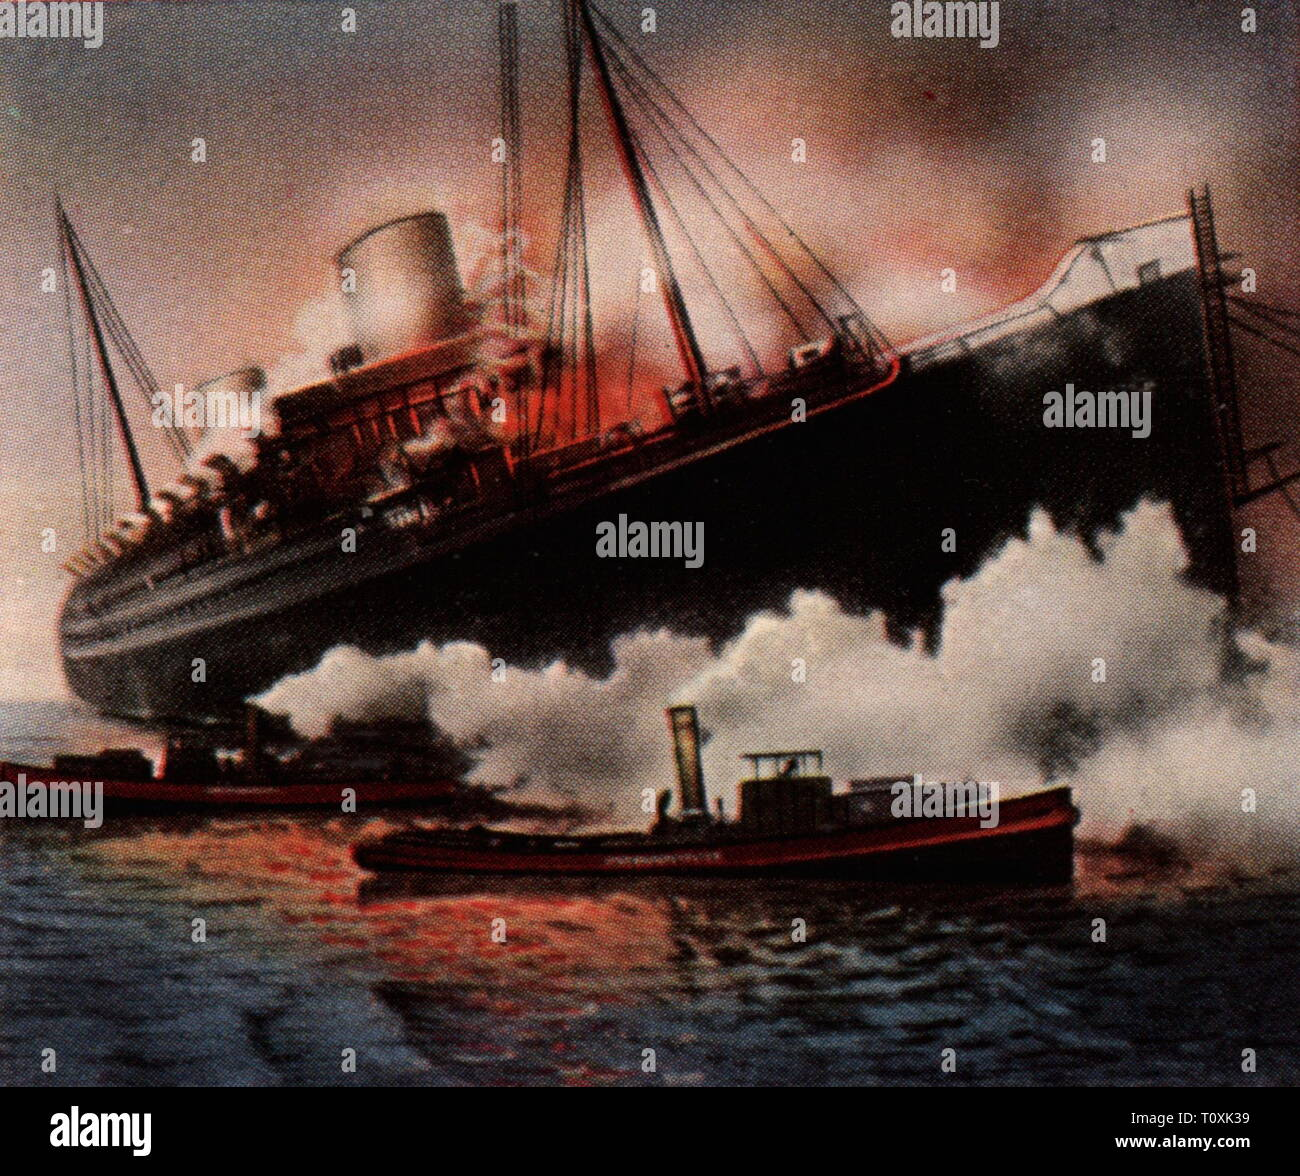 "transport / transportation, ships, ship accidents, fire on the steamship ""Europa"" of the Norddeutscher Lloyd, dockyard Blohm und Voss, Hamburg, 26.3.1929, coloured photograph, cigarette card, series ""Die Nachkriegszeit"", 1935, maritime disaster, maritime disasters, ships, ship, steamer, steamers, Germany, German Reich,  Weimar Republic, 1920s, 20th century, transport, transportation, fire, fires, steamship, steamships, dockyard, dockyards, coloured, colored, post war period, post-war period, post-war years, post-war era, historic, historical, Additional-Rights-Clearance-Info-Not-Available Stock Photo"